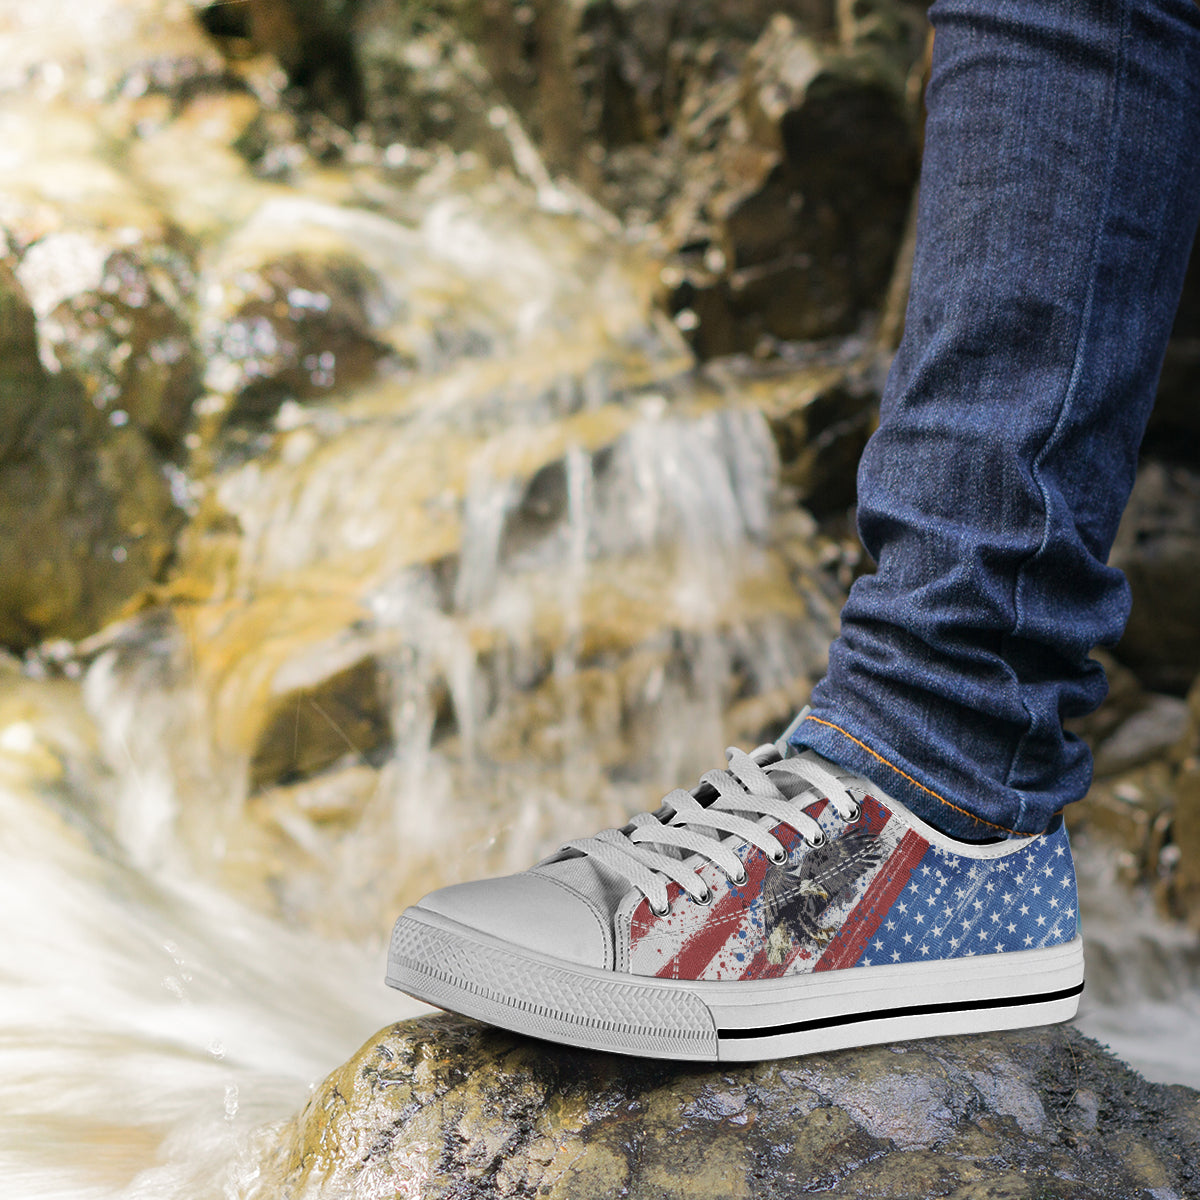 USA Flag & Eagle - Women's Low Top Shoes